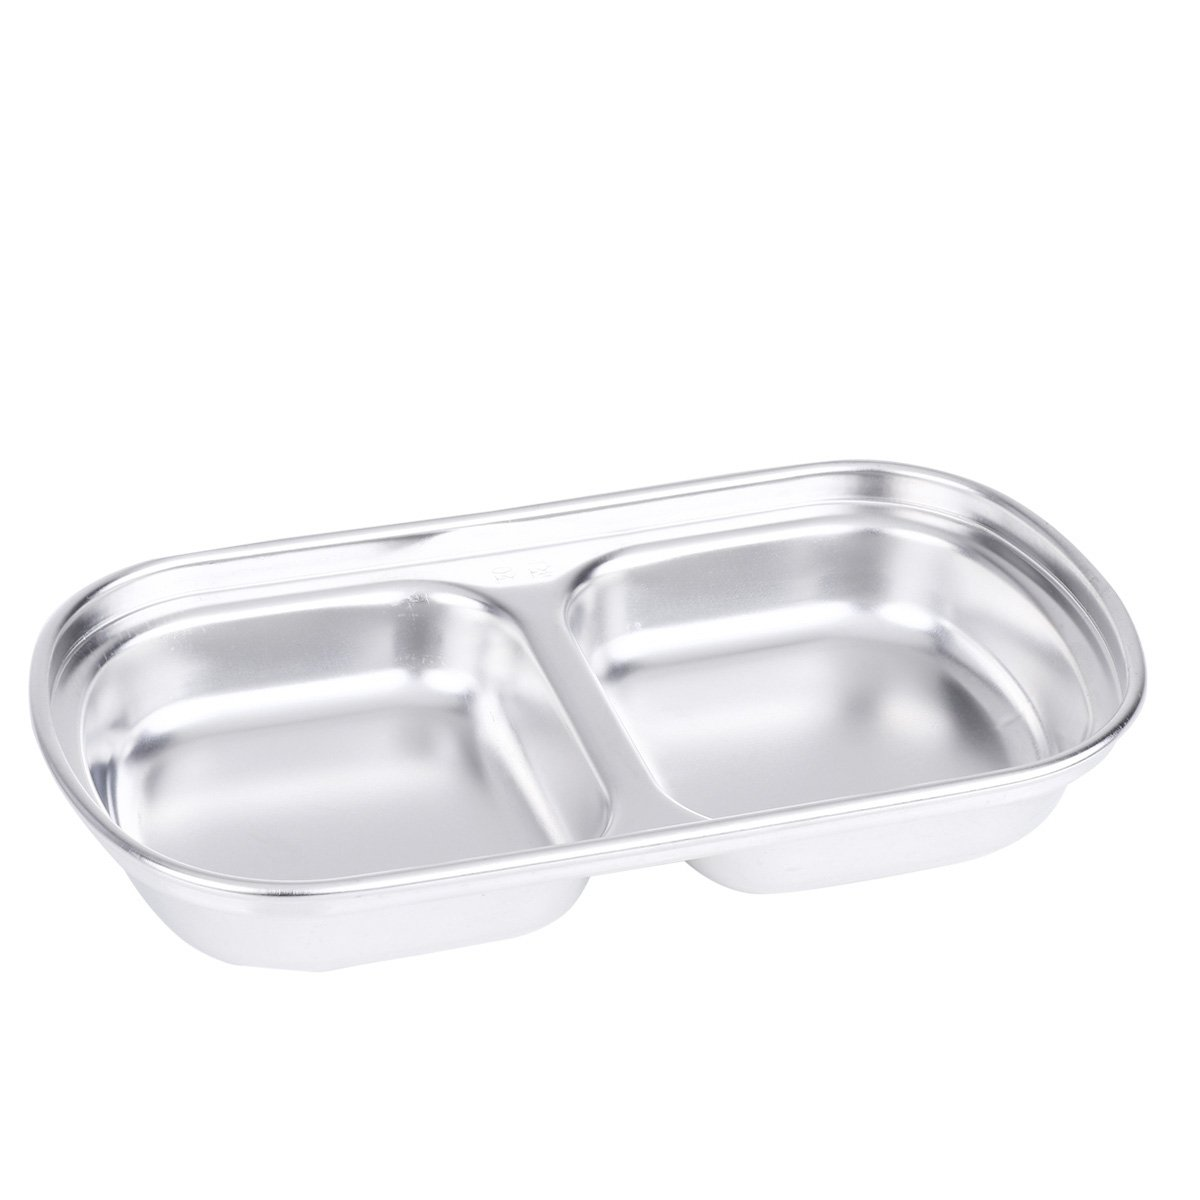 Unbreakable Dipping Bowl Sauce Dish Glazed Stainless Steel Condiment Server Baby Snack Tray 2-Grid